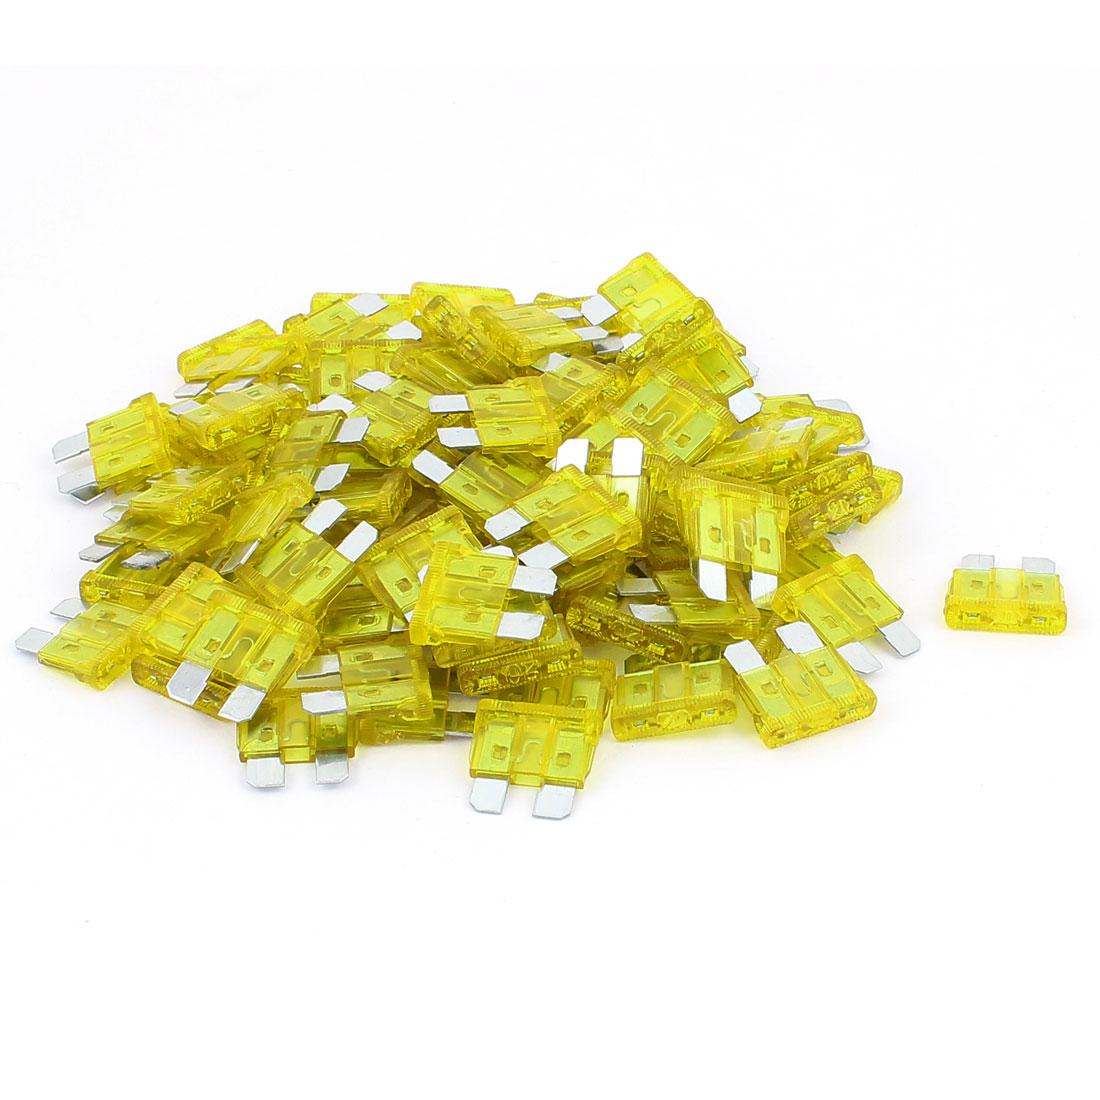 100pcs DC 32V 15A Yellow Plastic Shell Blade Mounting Fuse for Auto Car Truck